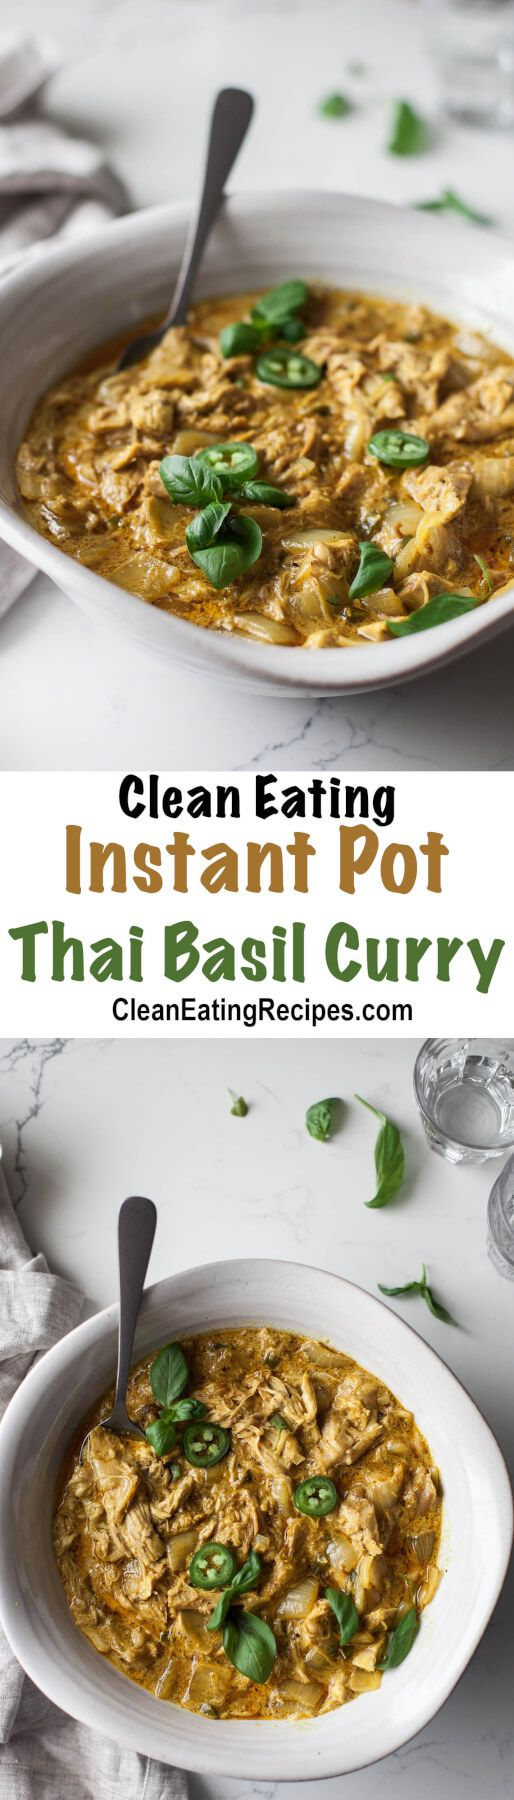 I love this Clean Eating curry recipe because it's so easy to throw it in the Instant Pot and come back when it's done in a little over half an hour and have a healthy, flavorful meal! It's also gluten-free and dairy-free.